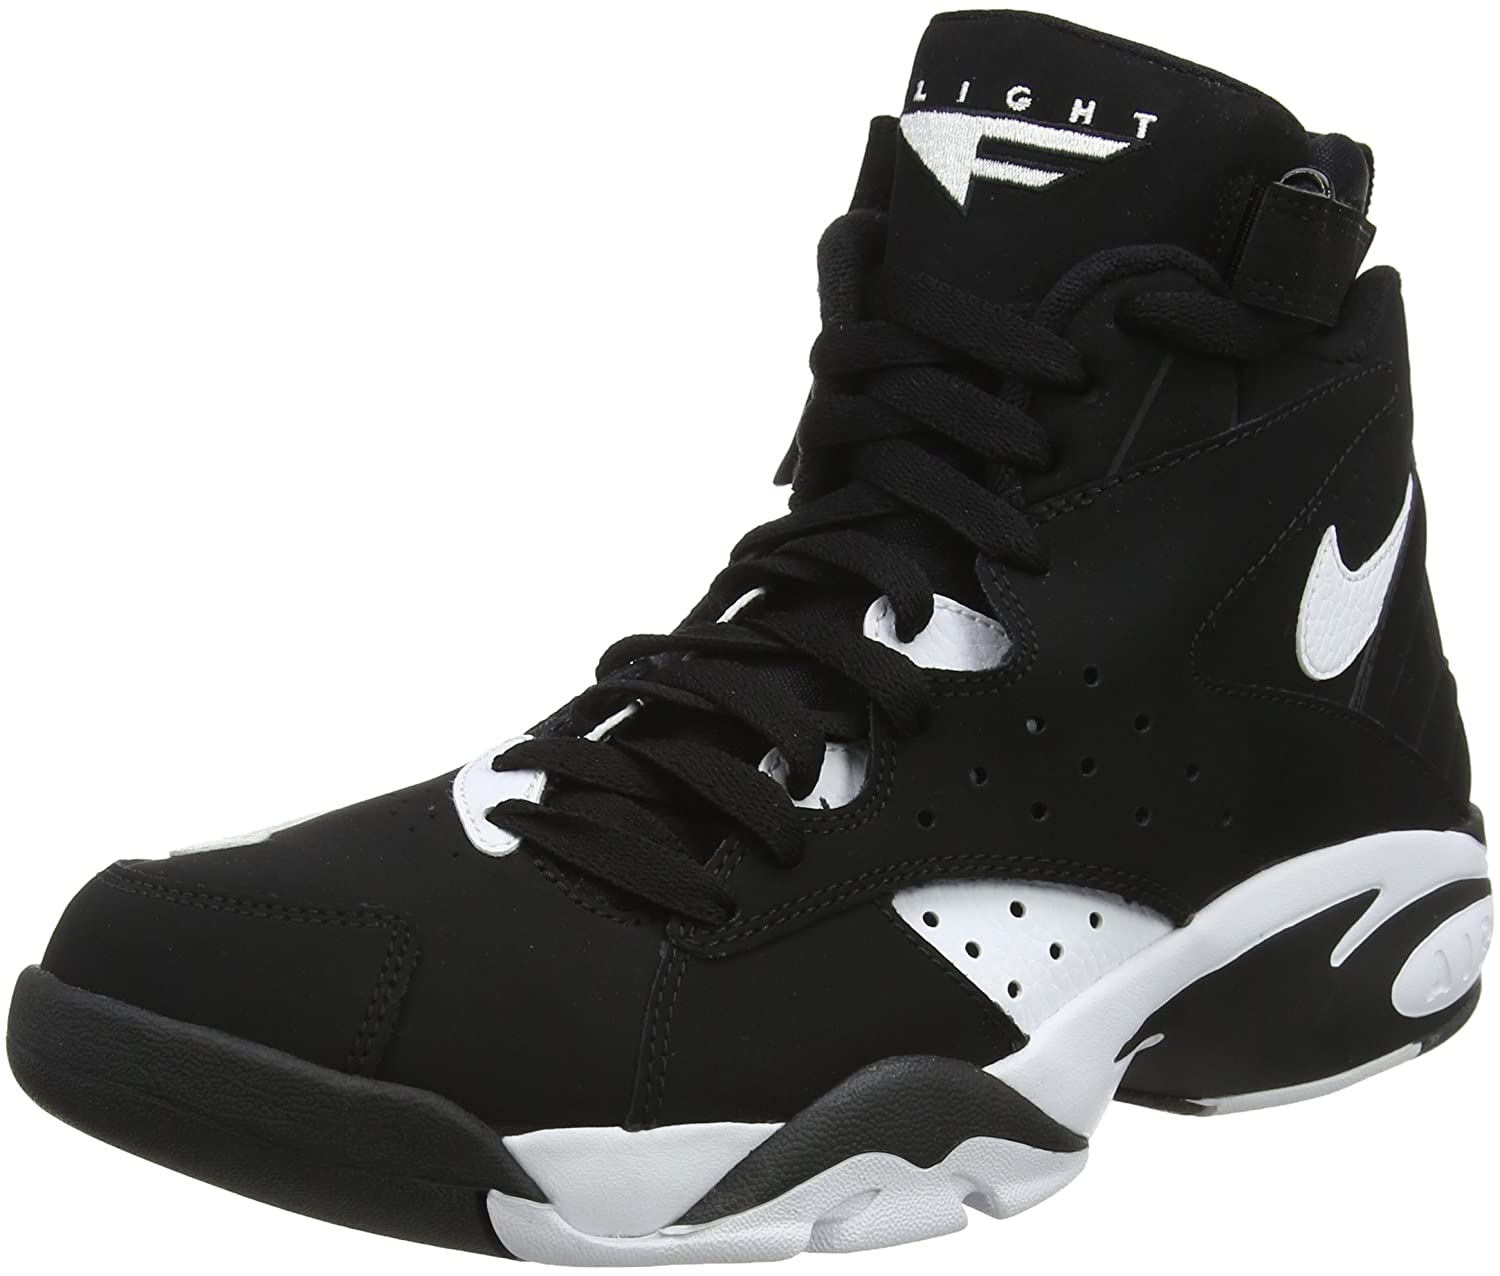 new style 9a749 5f6e3 Top1  NIKE Air Maestro II Limited Men  s Basketball Shoes Black White  ah8511-001